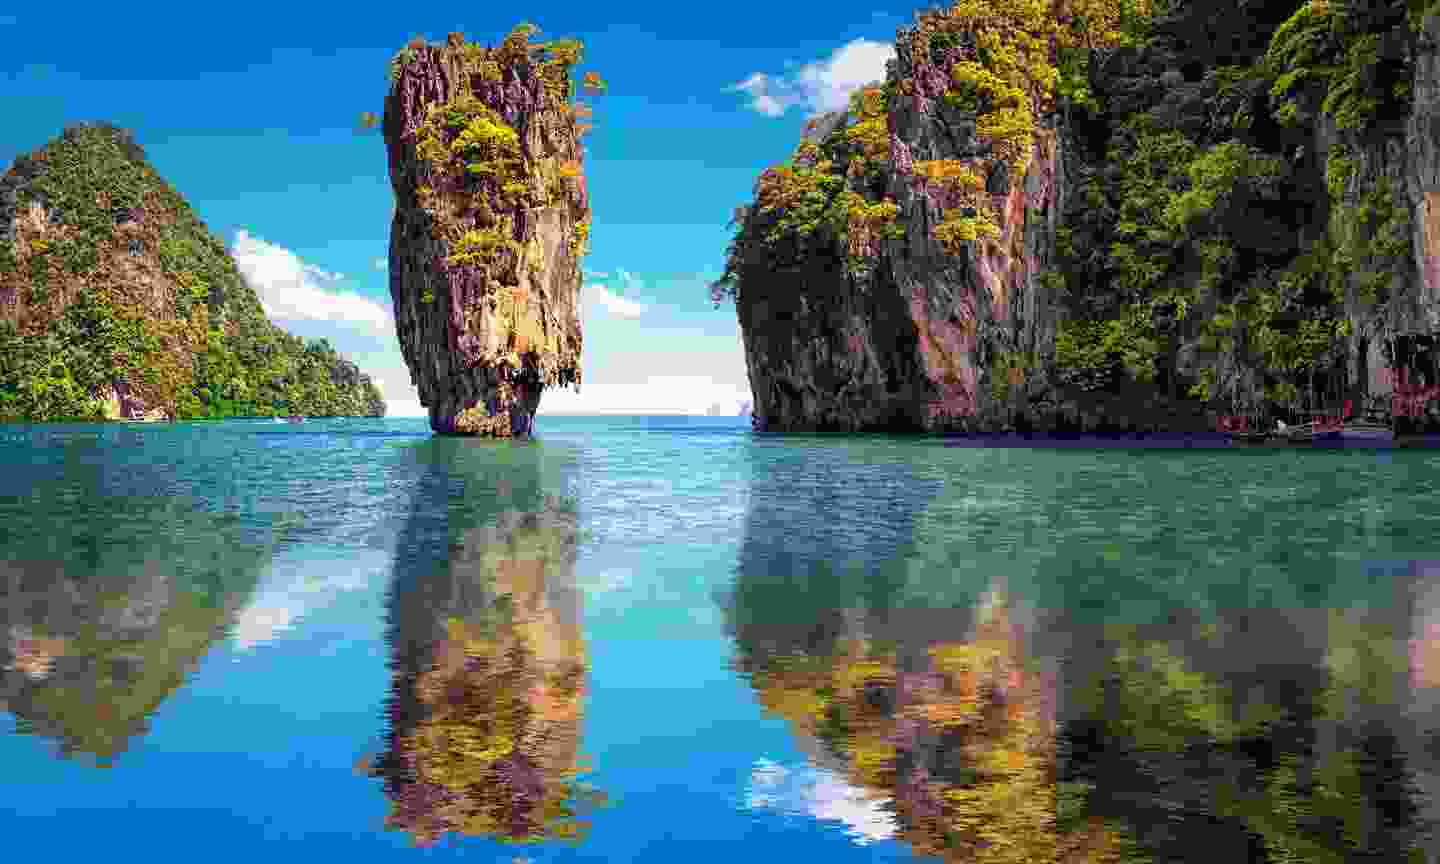 James Bond Island (Dreamstime)